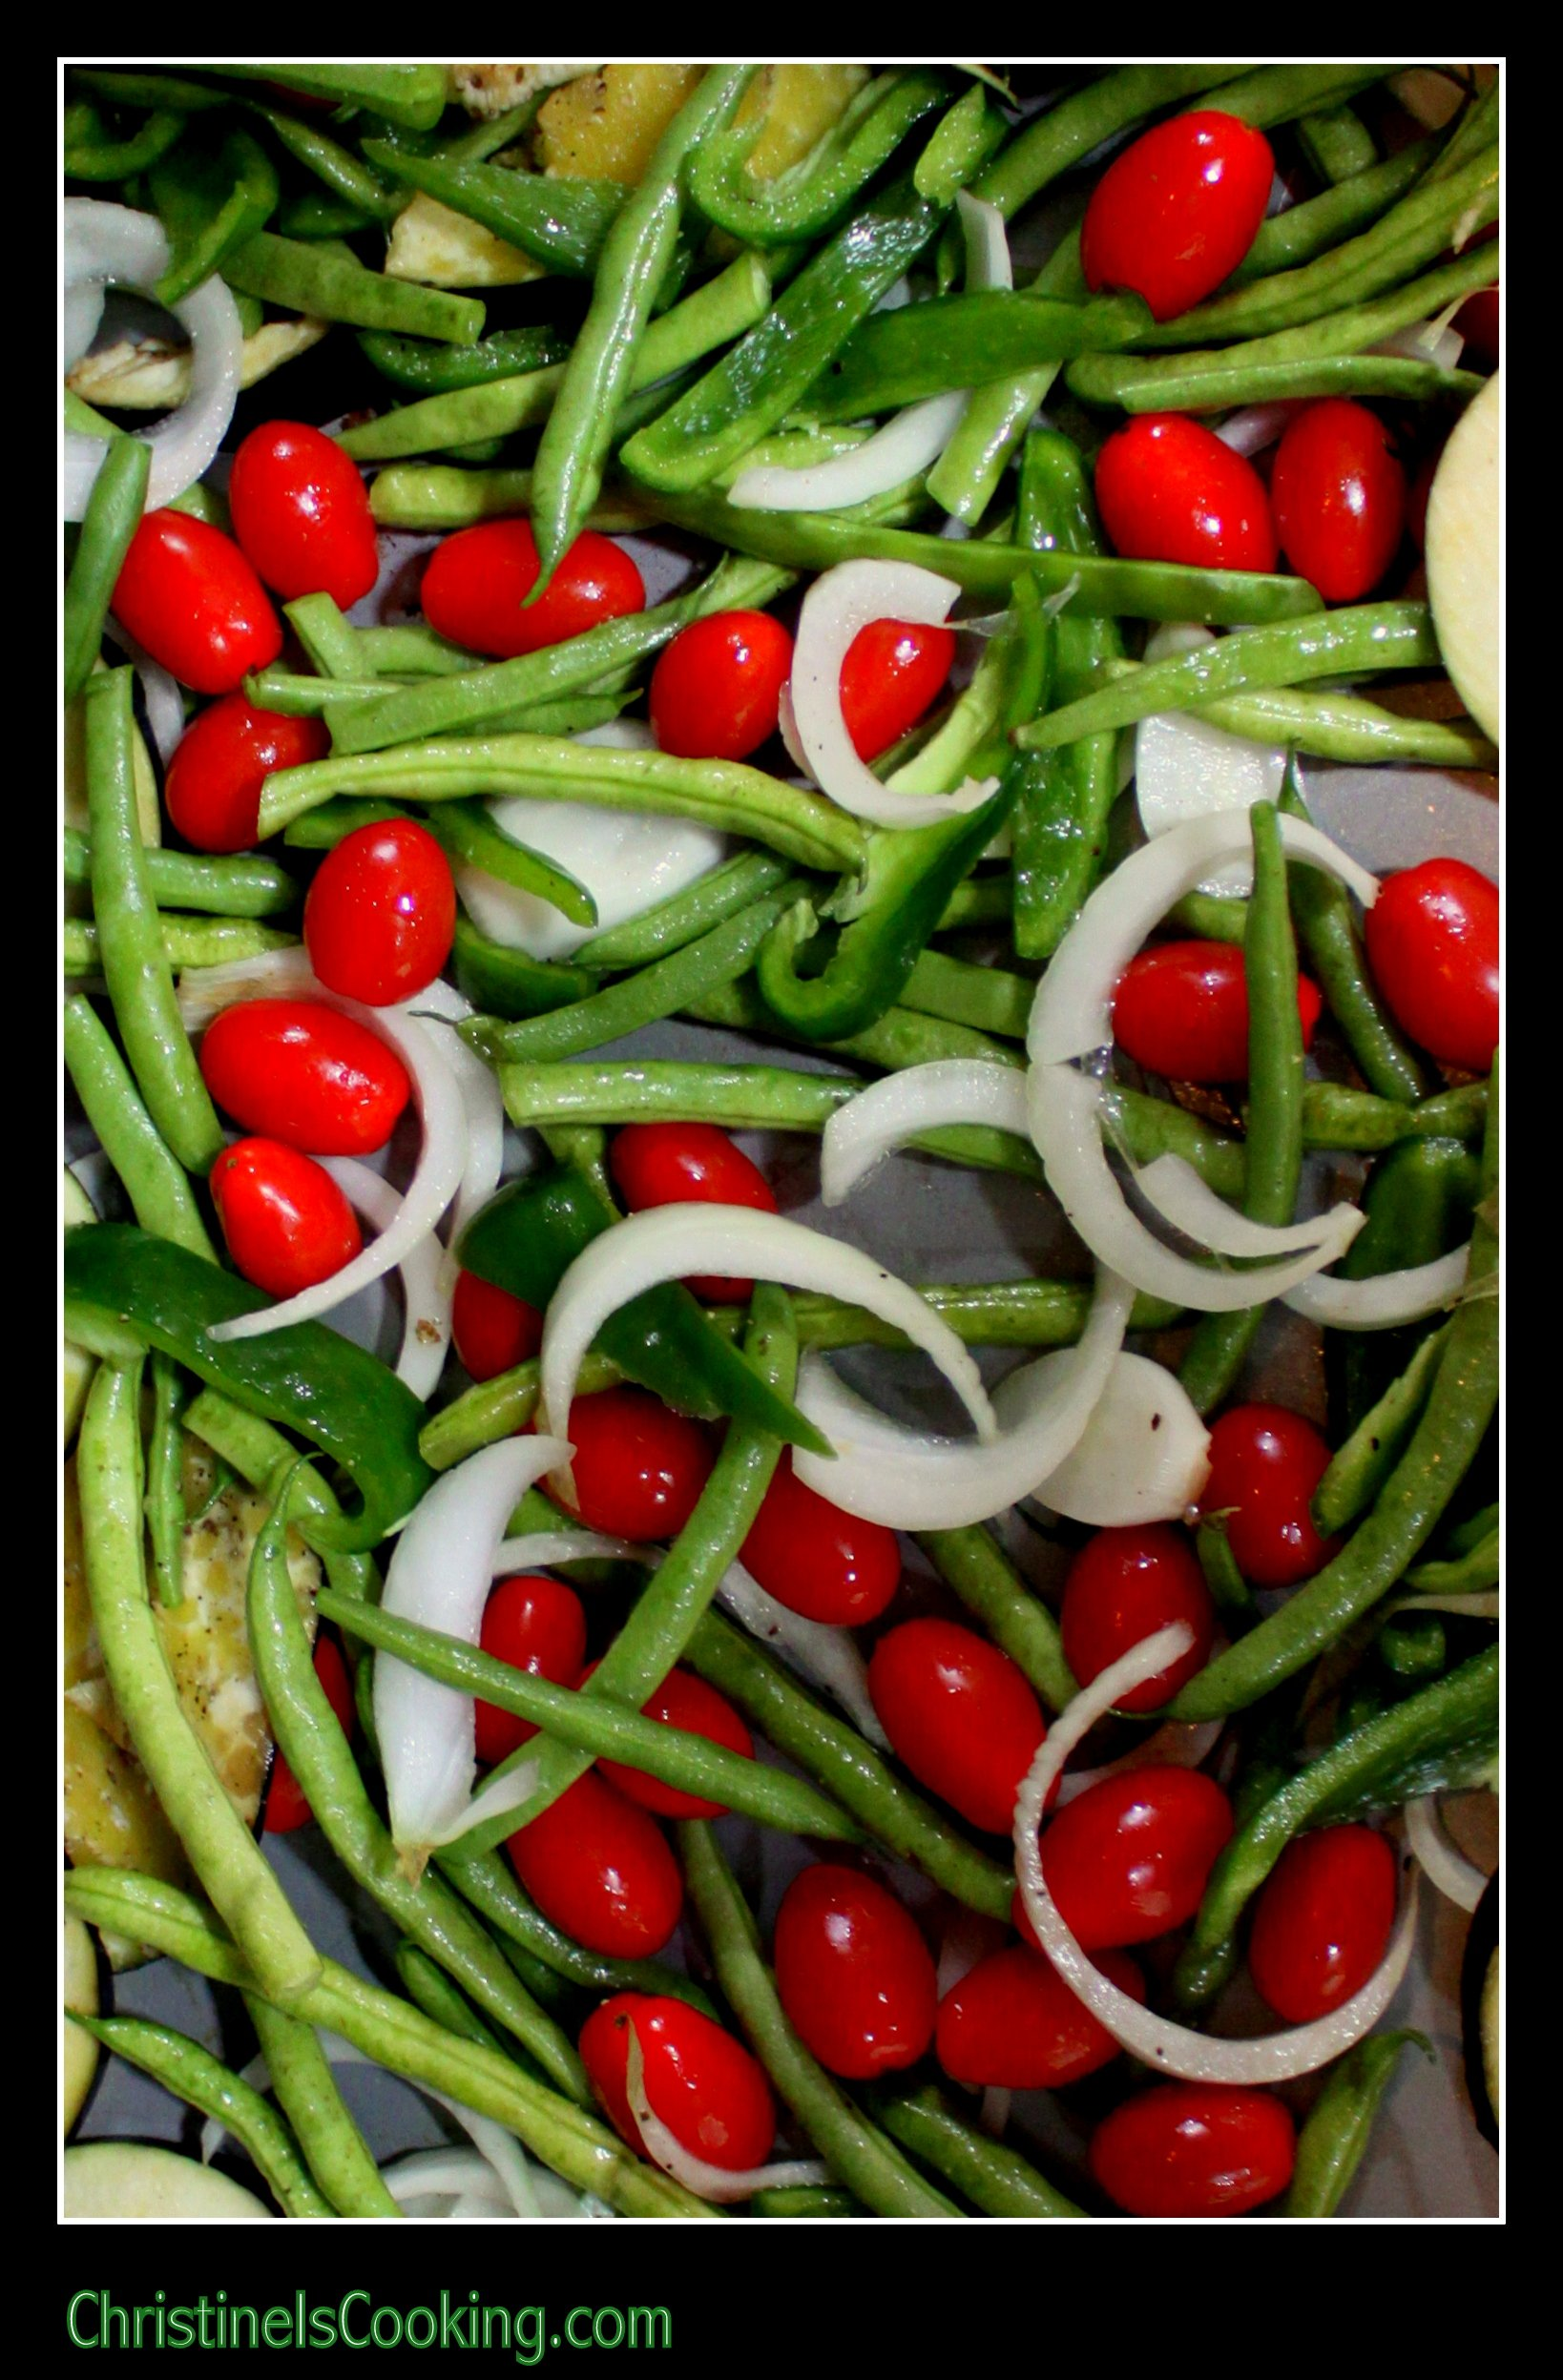 Here is an easy recipe for oven roasted green beans. This works well ...